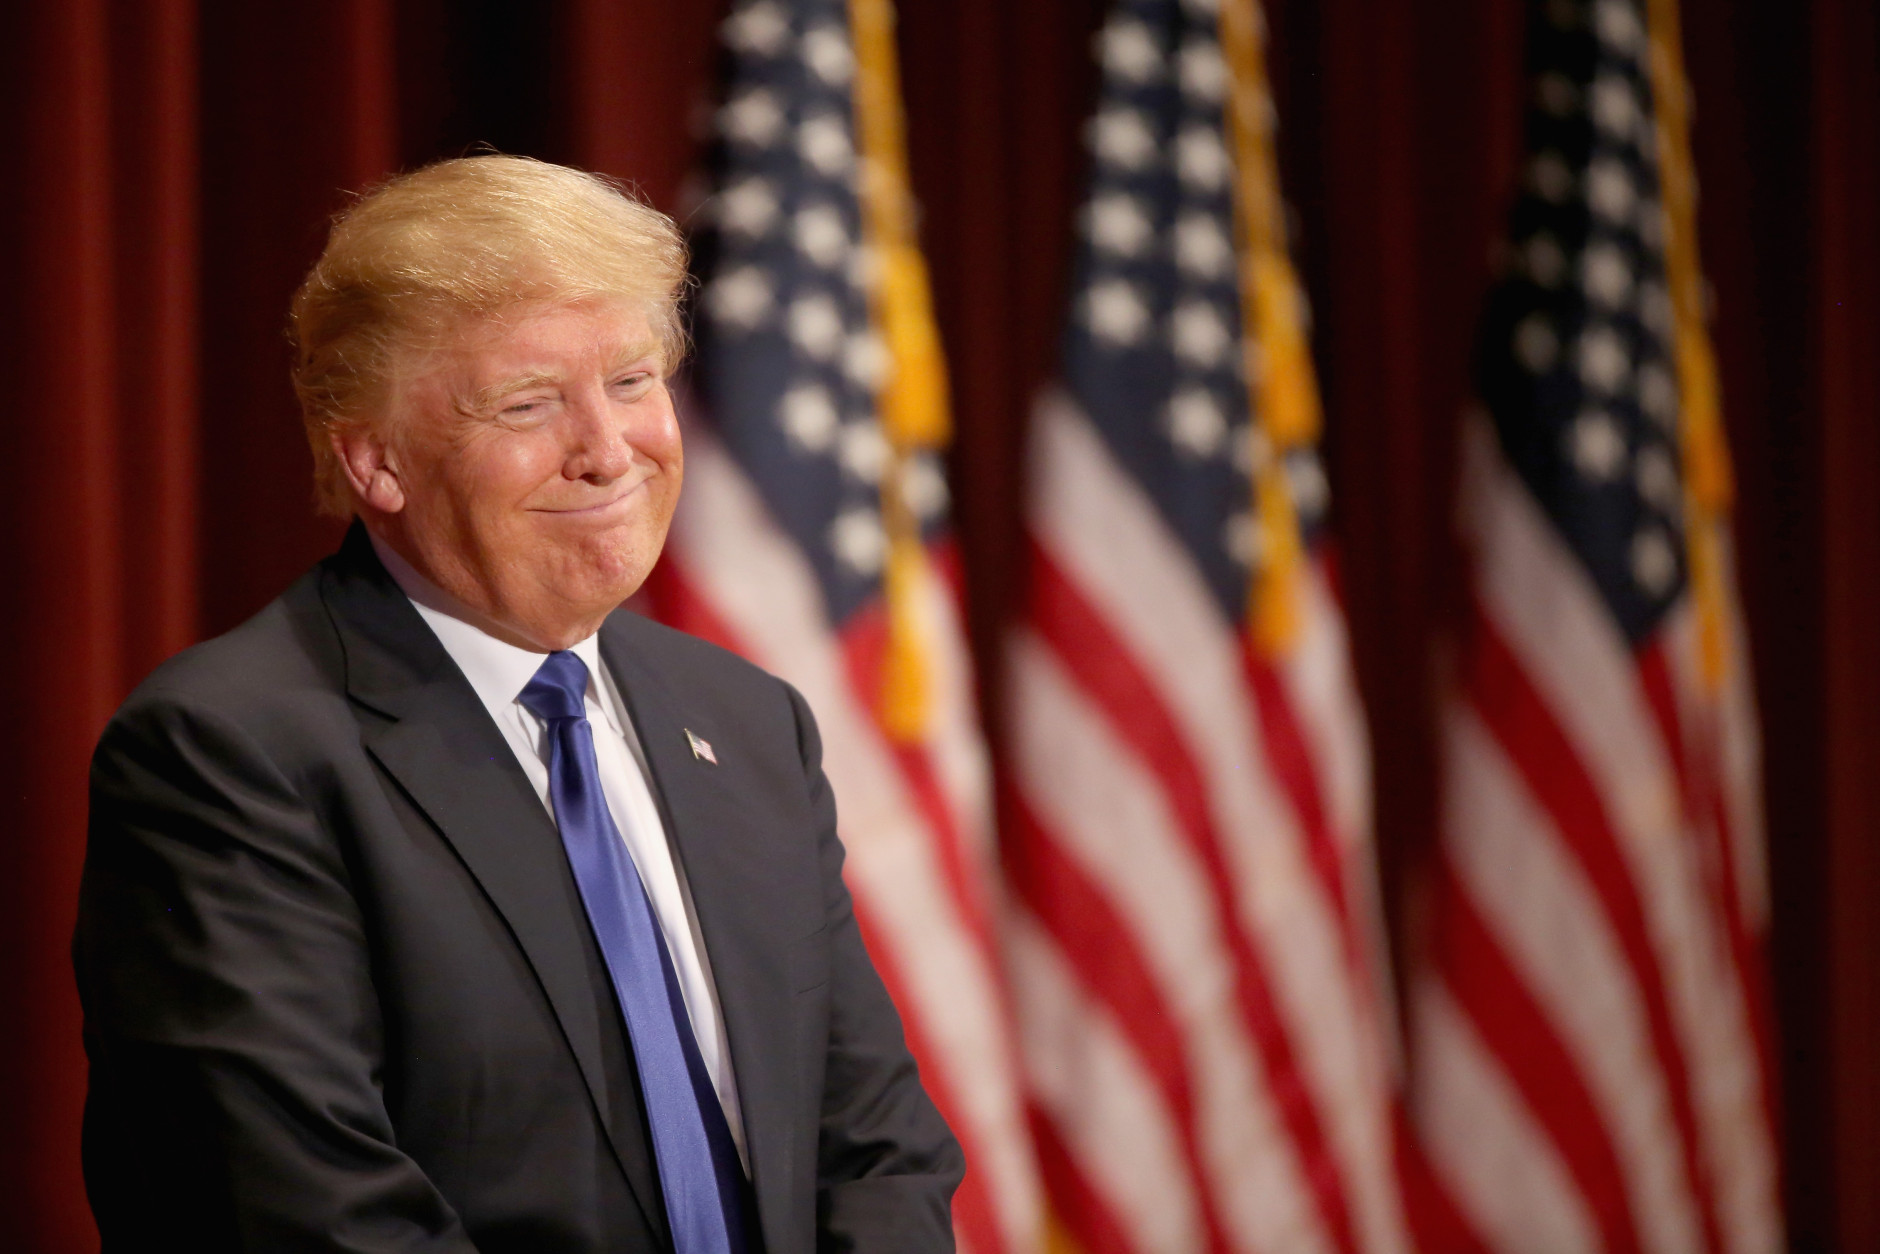 Republican presidential candidate Donald Trump smiles as he speaks to veterans at Drake University on January 28, 2016 in Des Moines, Iowa. Donald Trump held his alternative event to benefit veterans after withdrawing from the televised Fox News/Google GOP debate which airs at the same time. (Photo by Christopher Furlong/Getty Images)